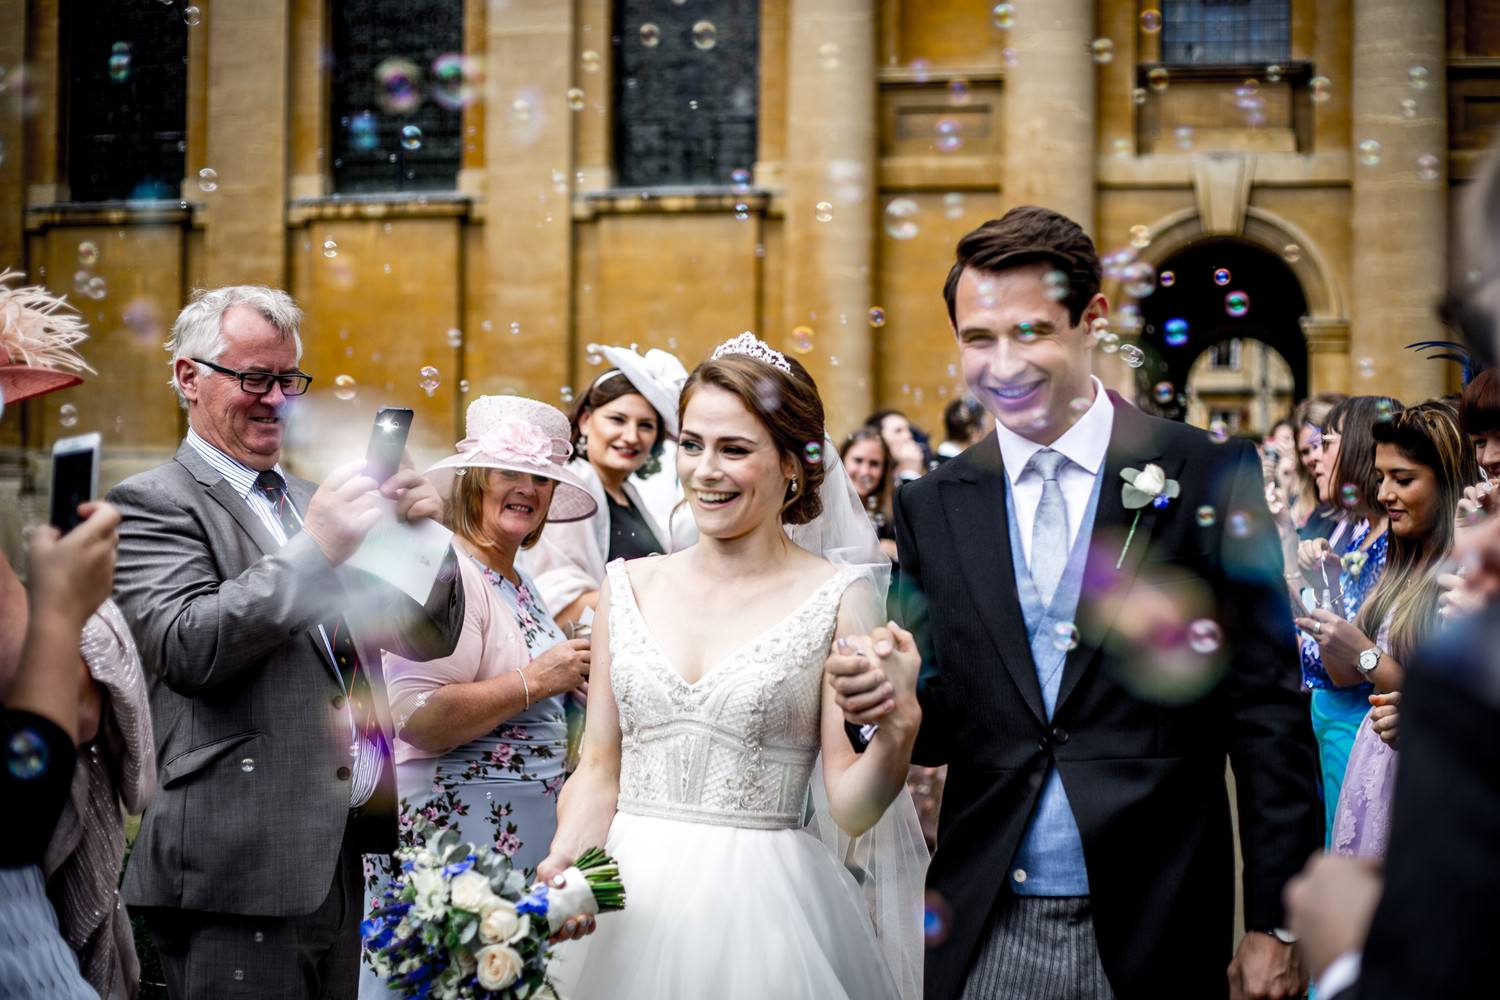 Relaxed Wedding Photographer North London - Tom Hosking